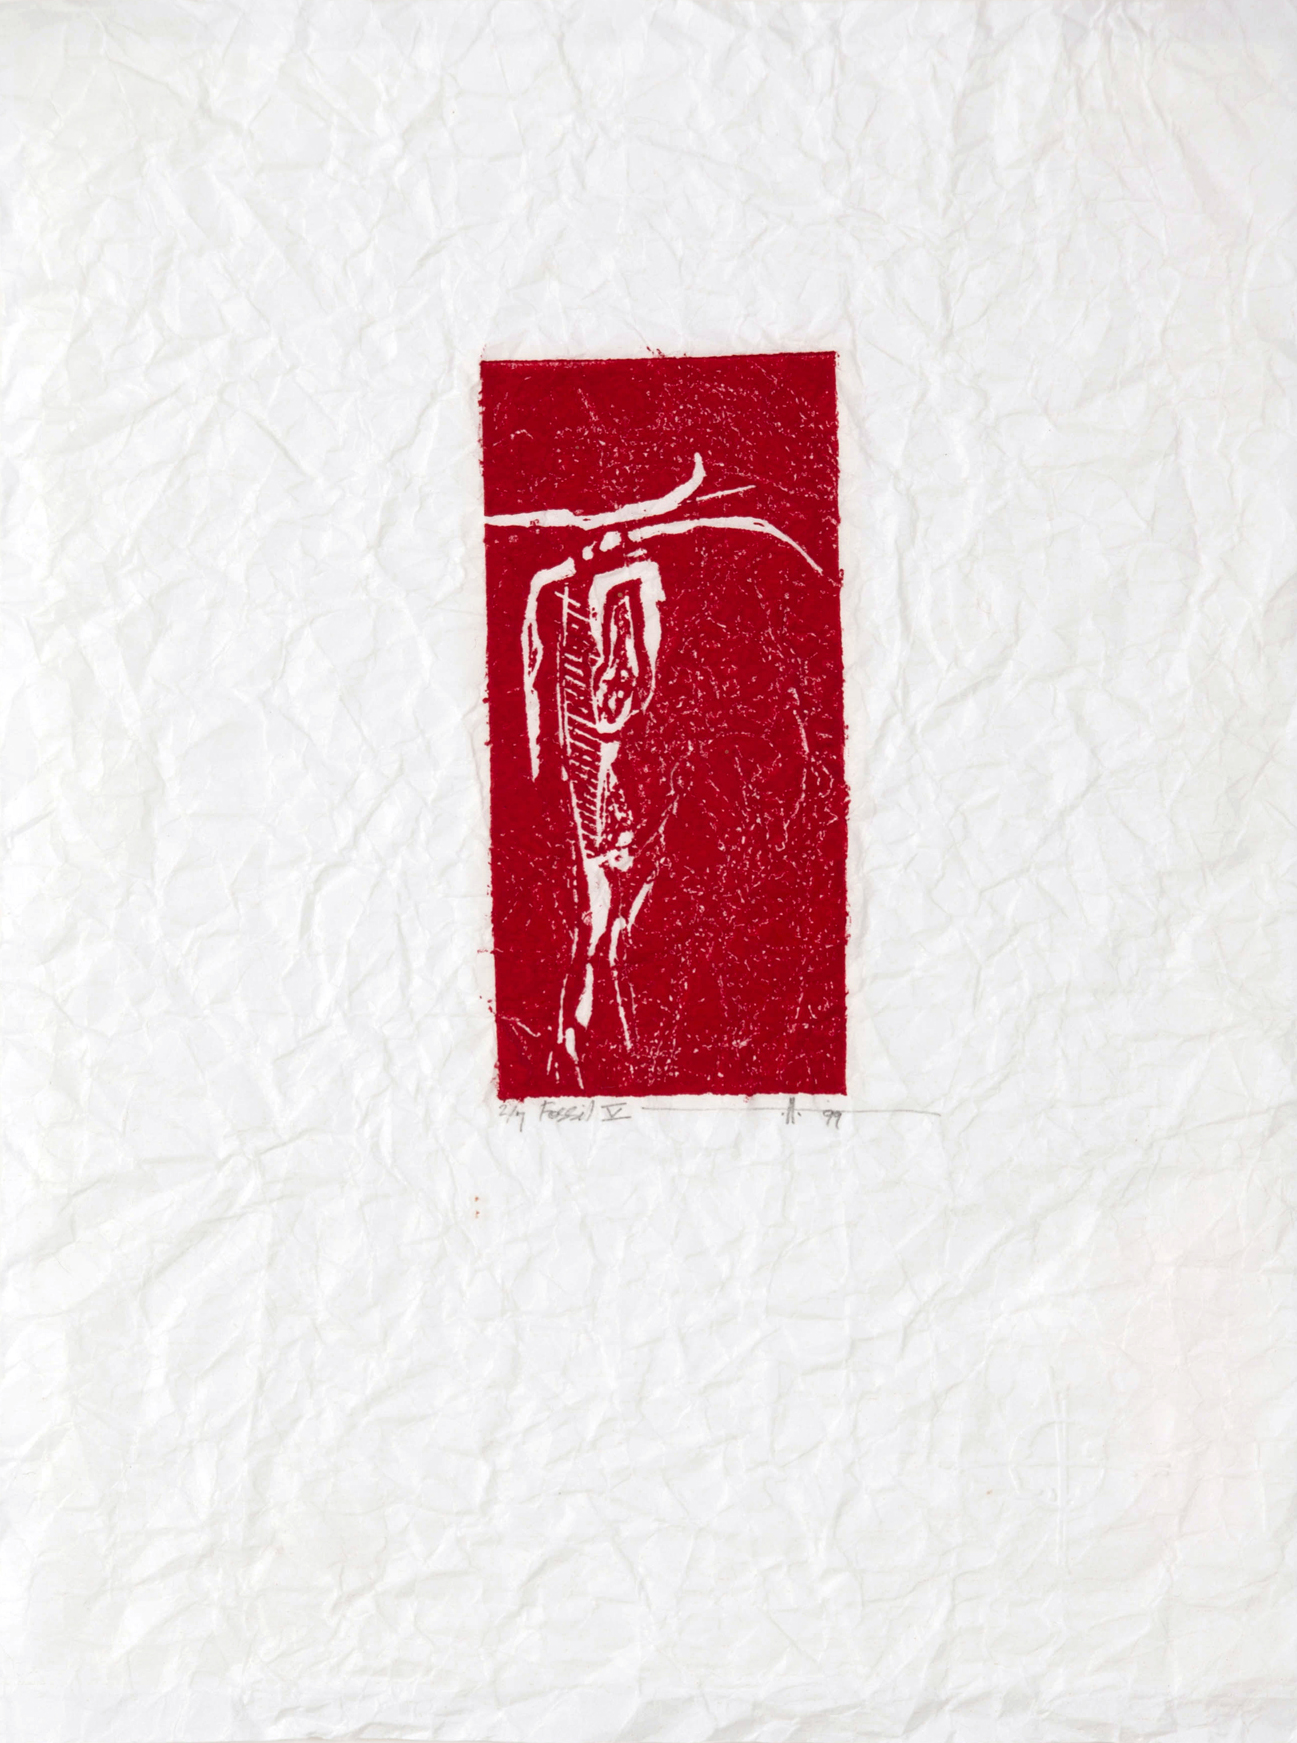 """Fossil 5, BC  Linocut on Distressed Rice Paper 9"""" x10"""" 2000 /Silence Exhibition 1/7, sold out"""